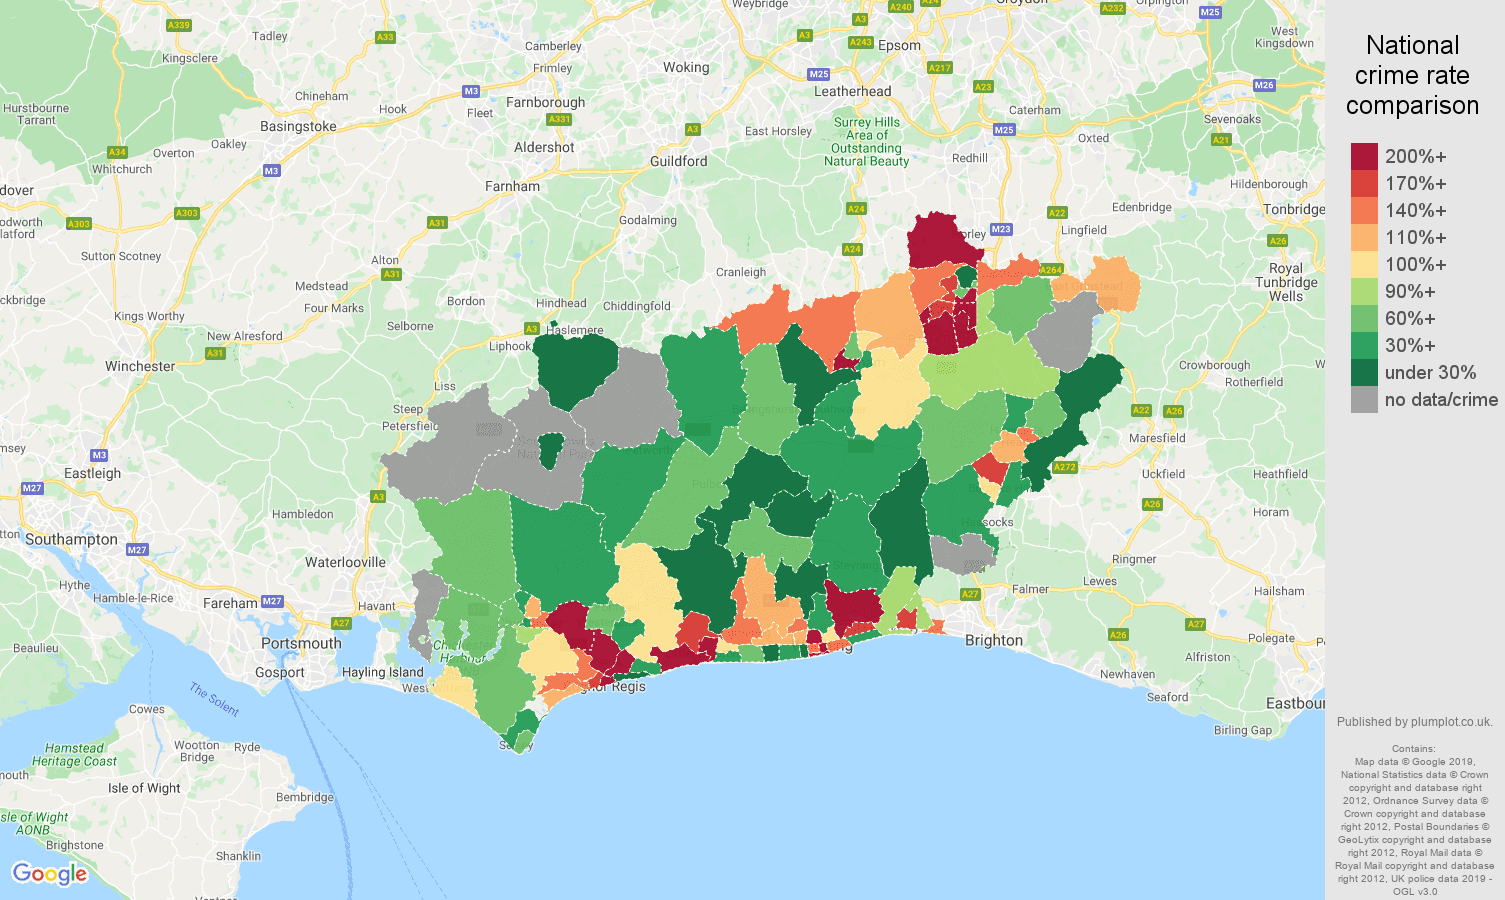 West Sussex possession of weapons crime rate comparison map